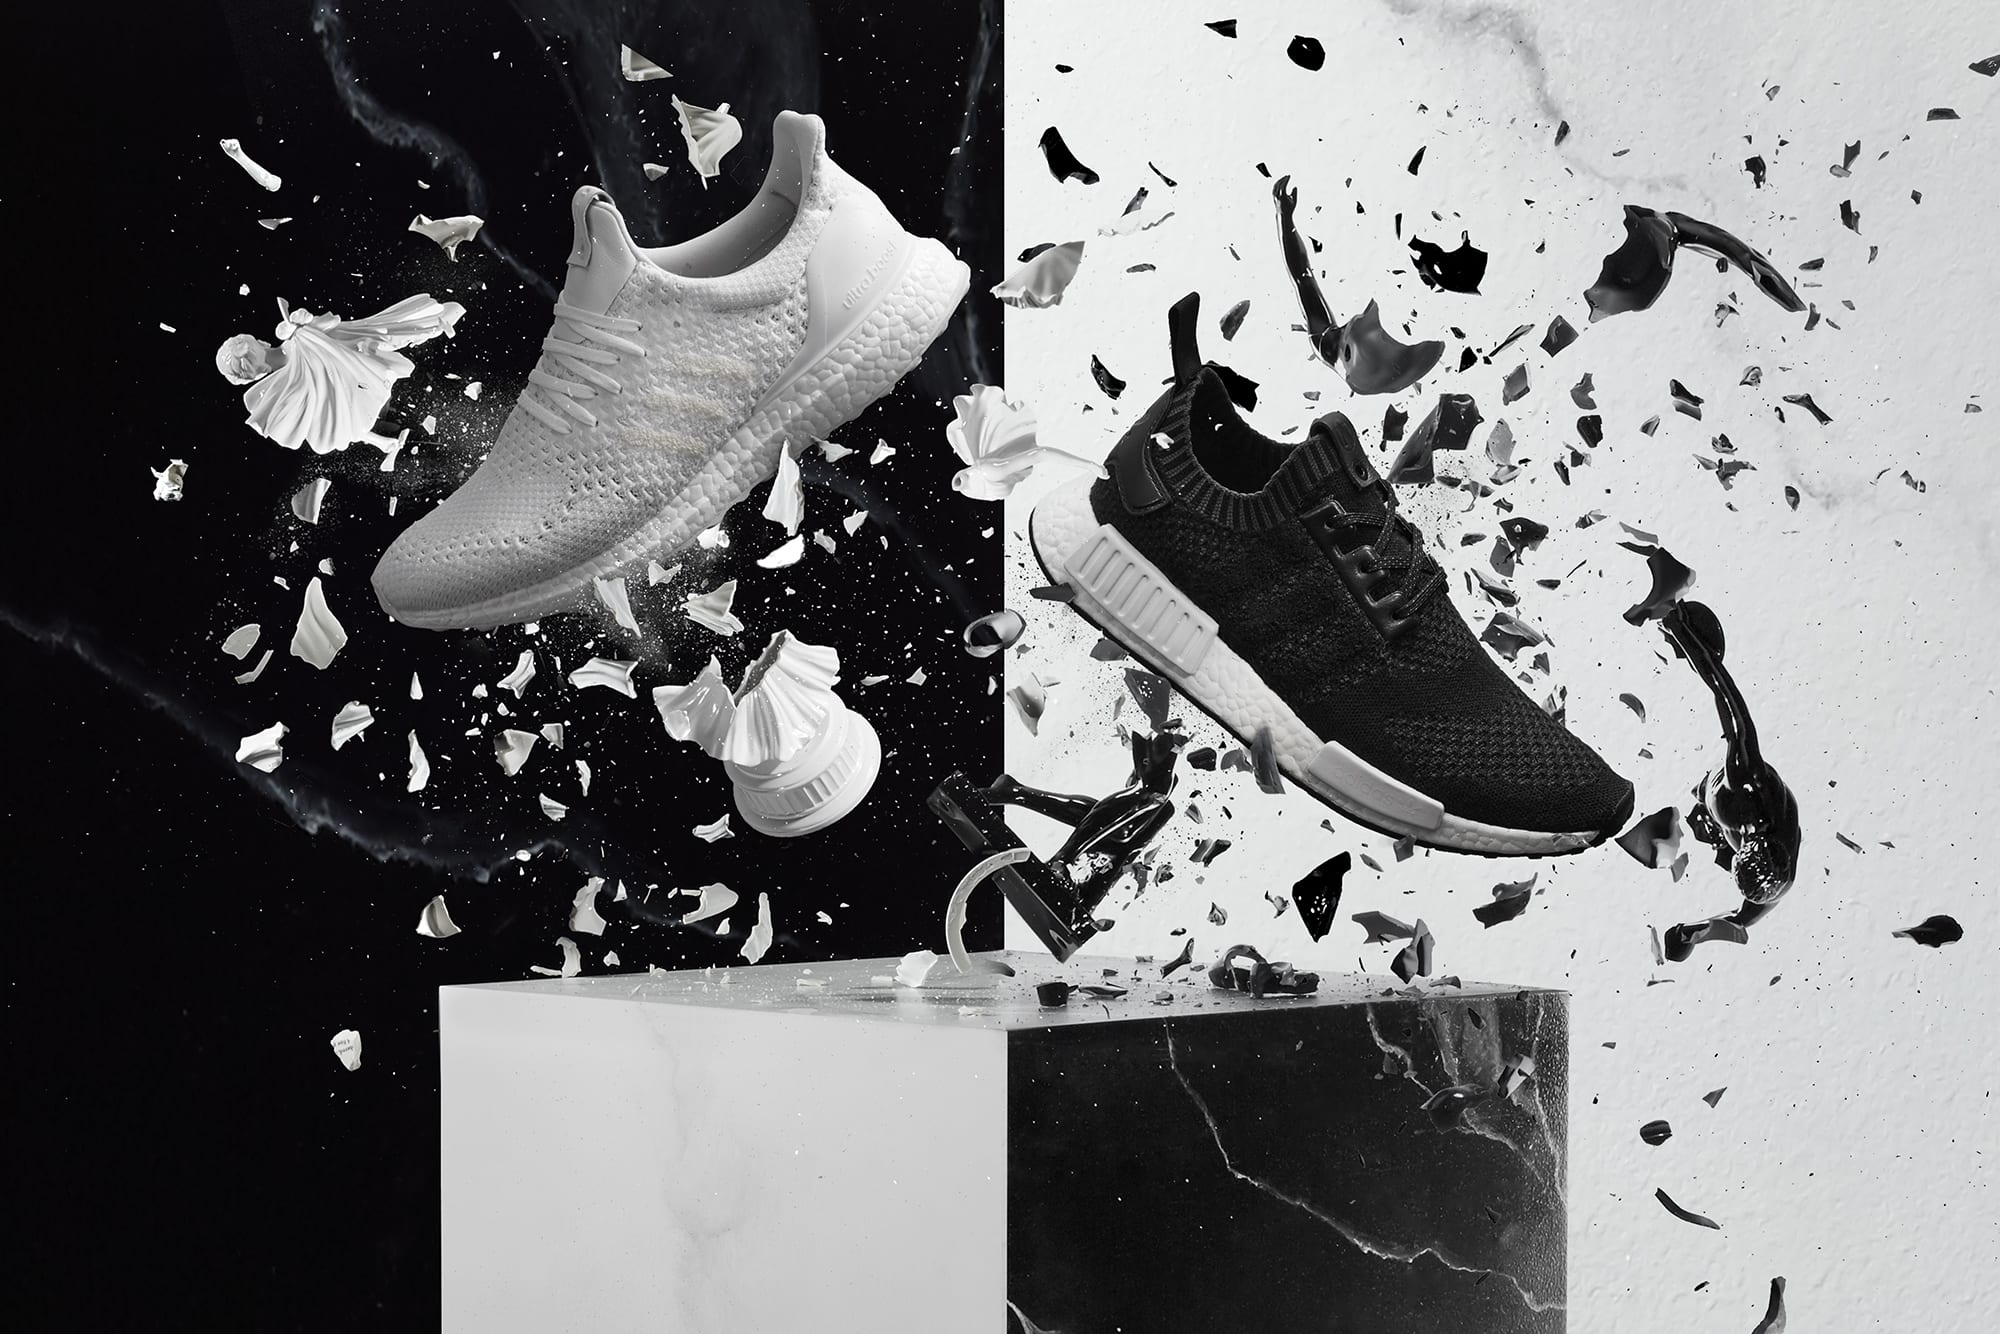 4feed6f219b adidas Consortium Sneaker Exchange  A Ma Maniére X Invincible - Beamhill